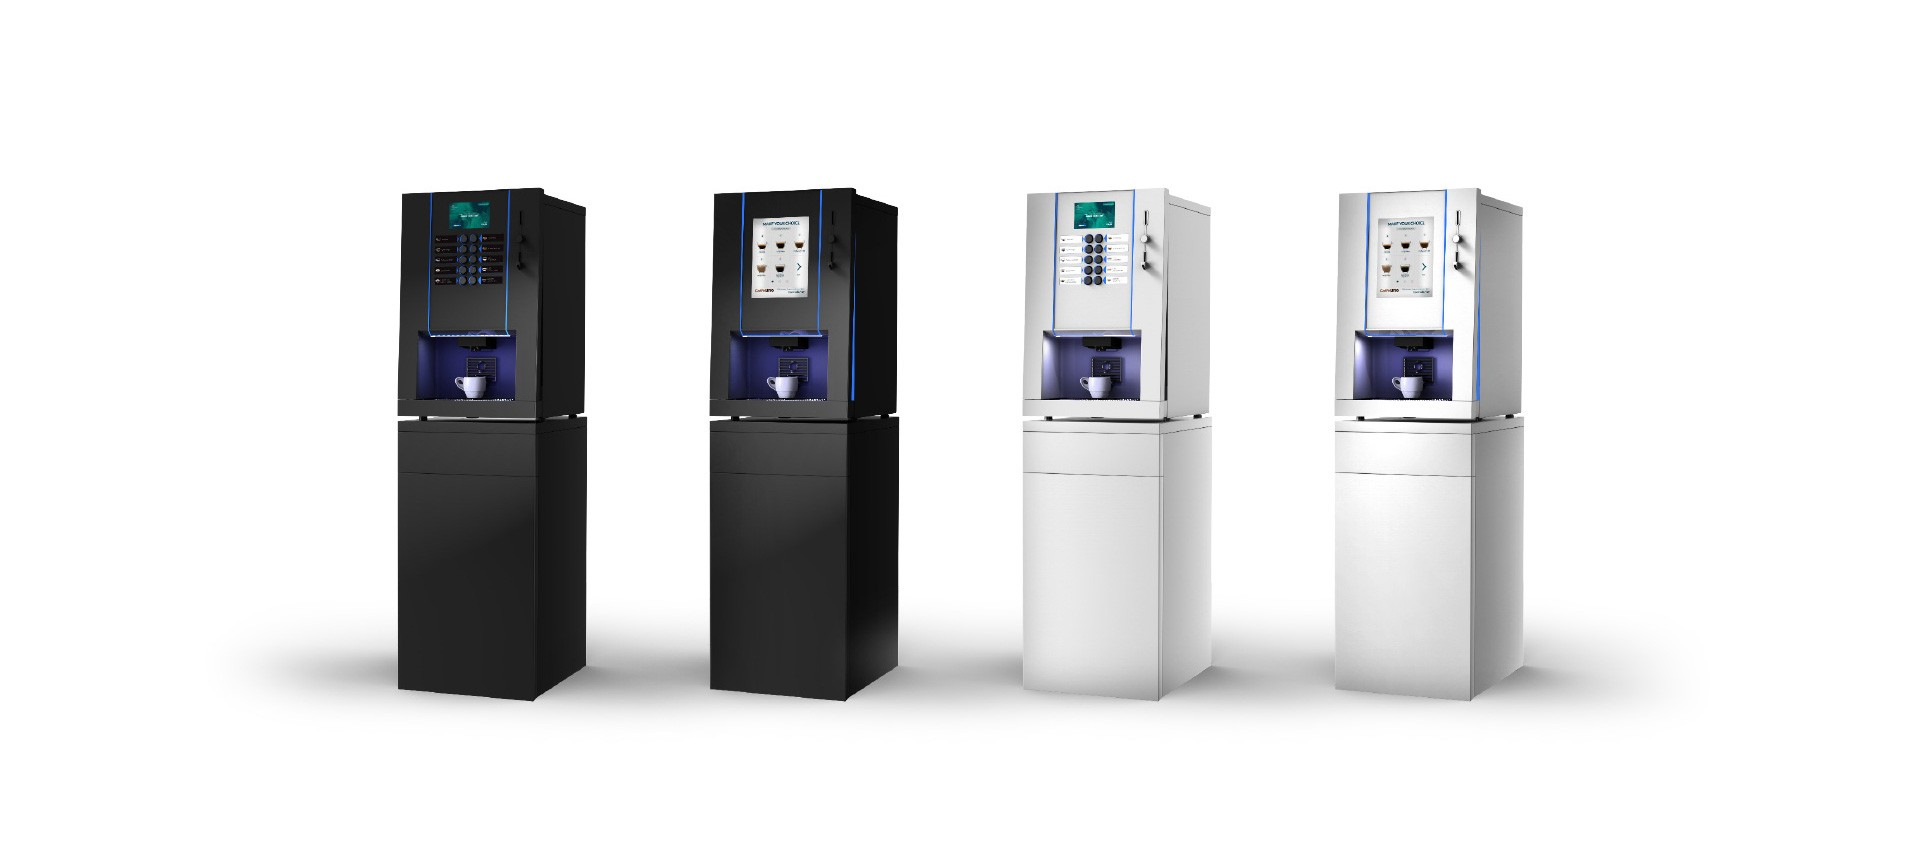 Organic and healthy Vending Machine Services in NY